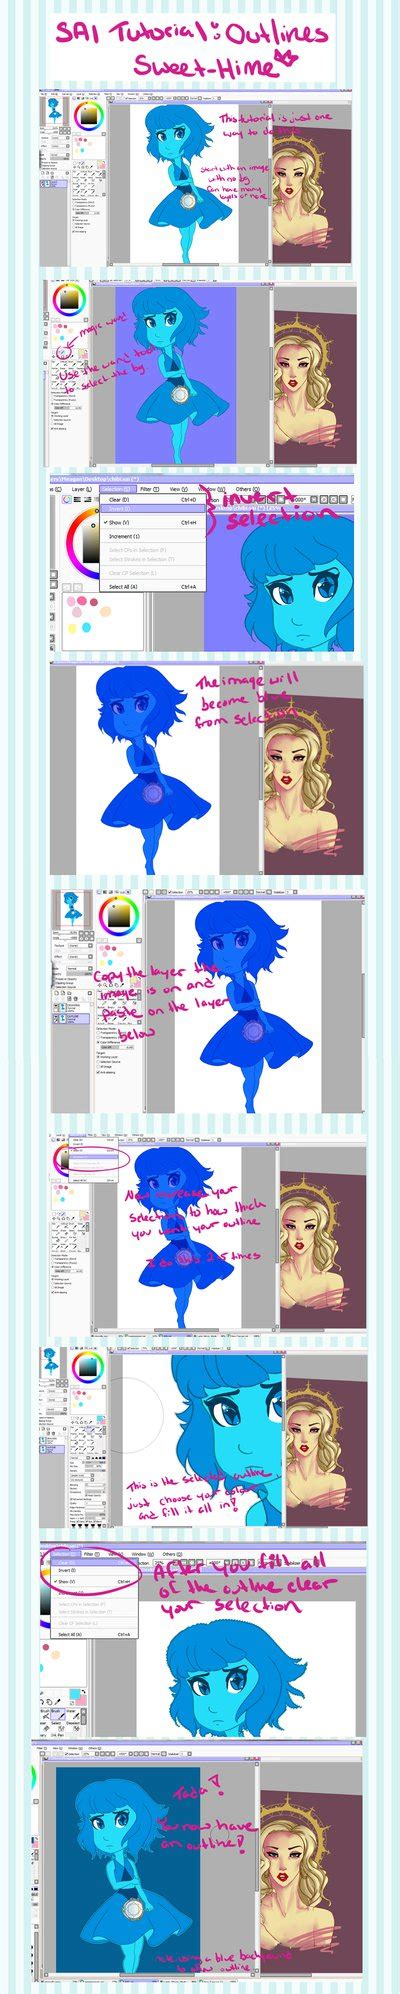 paint tool sai outline tutorial paint tool sai tutorial outlines by sweet hime on deviantart